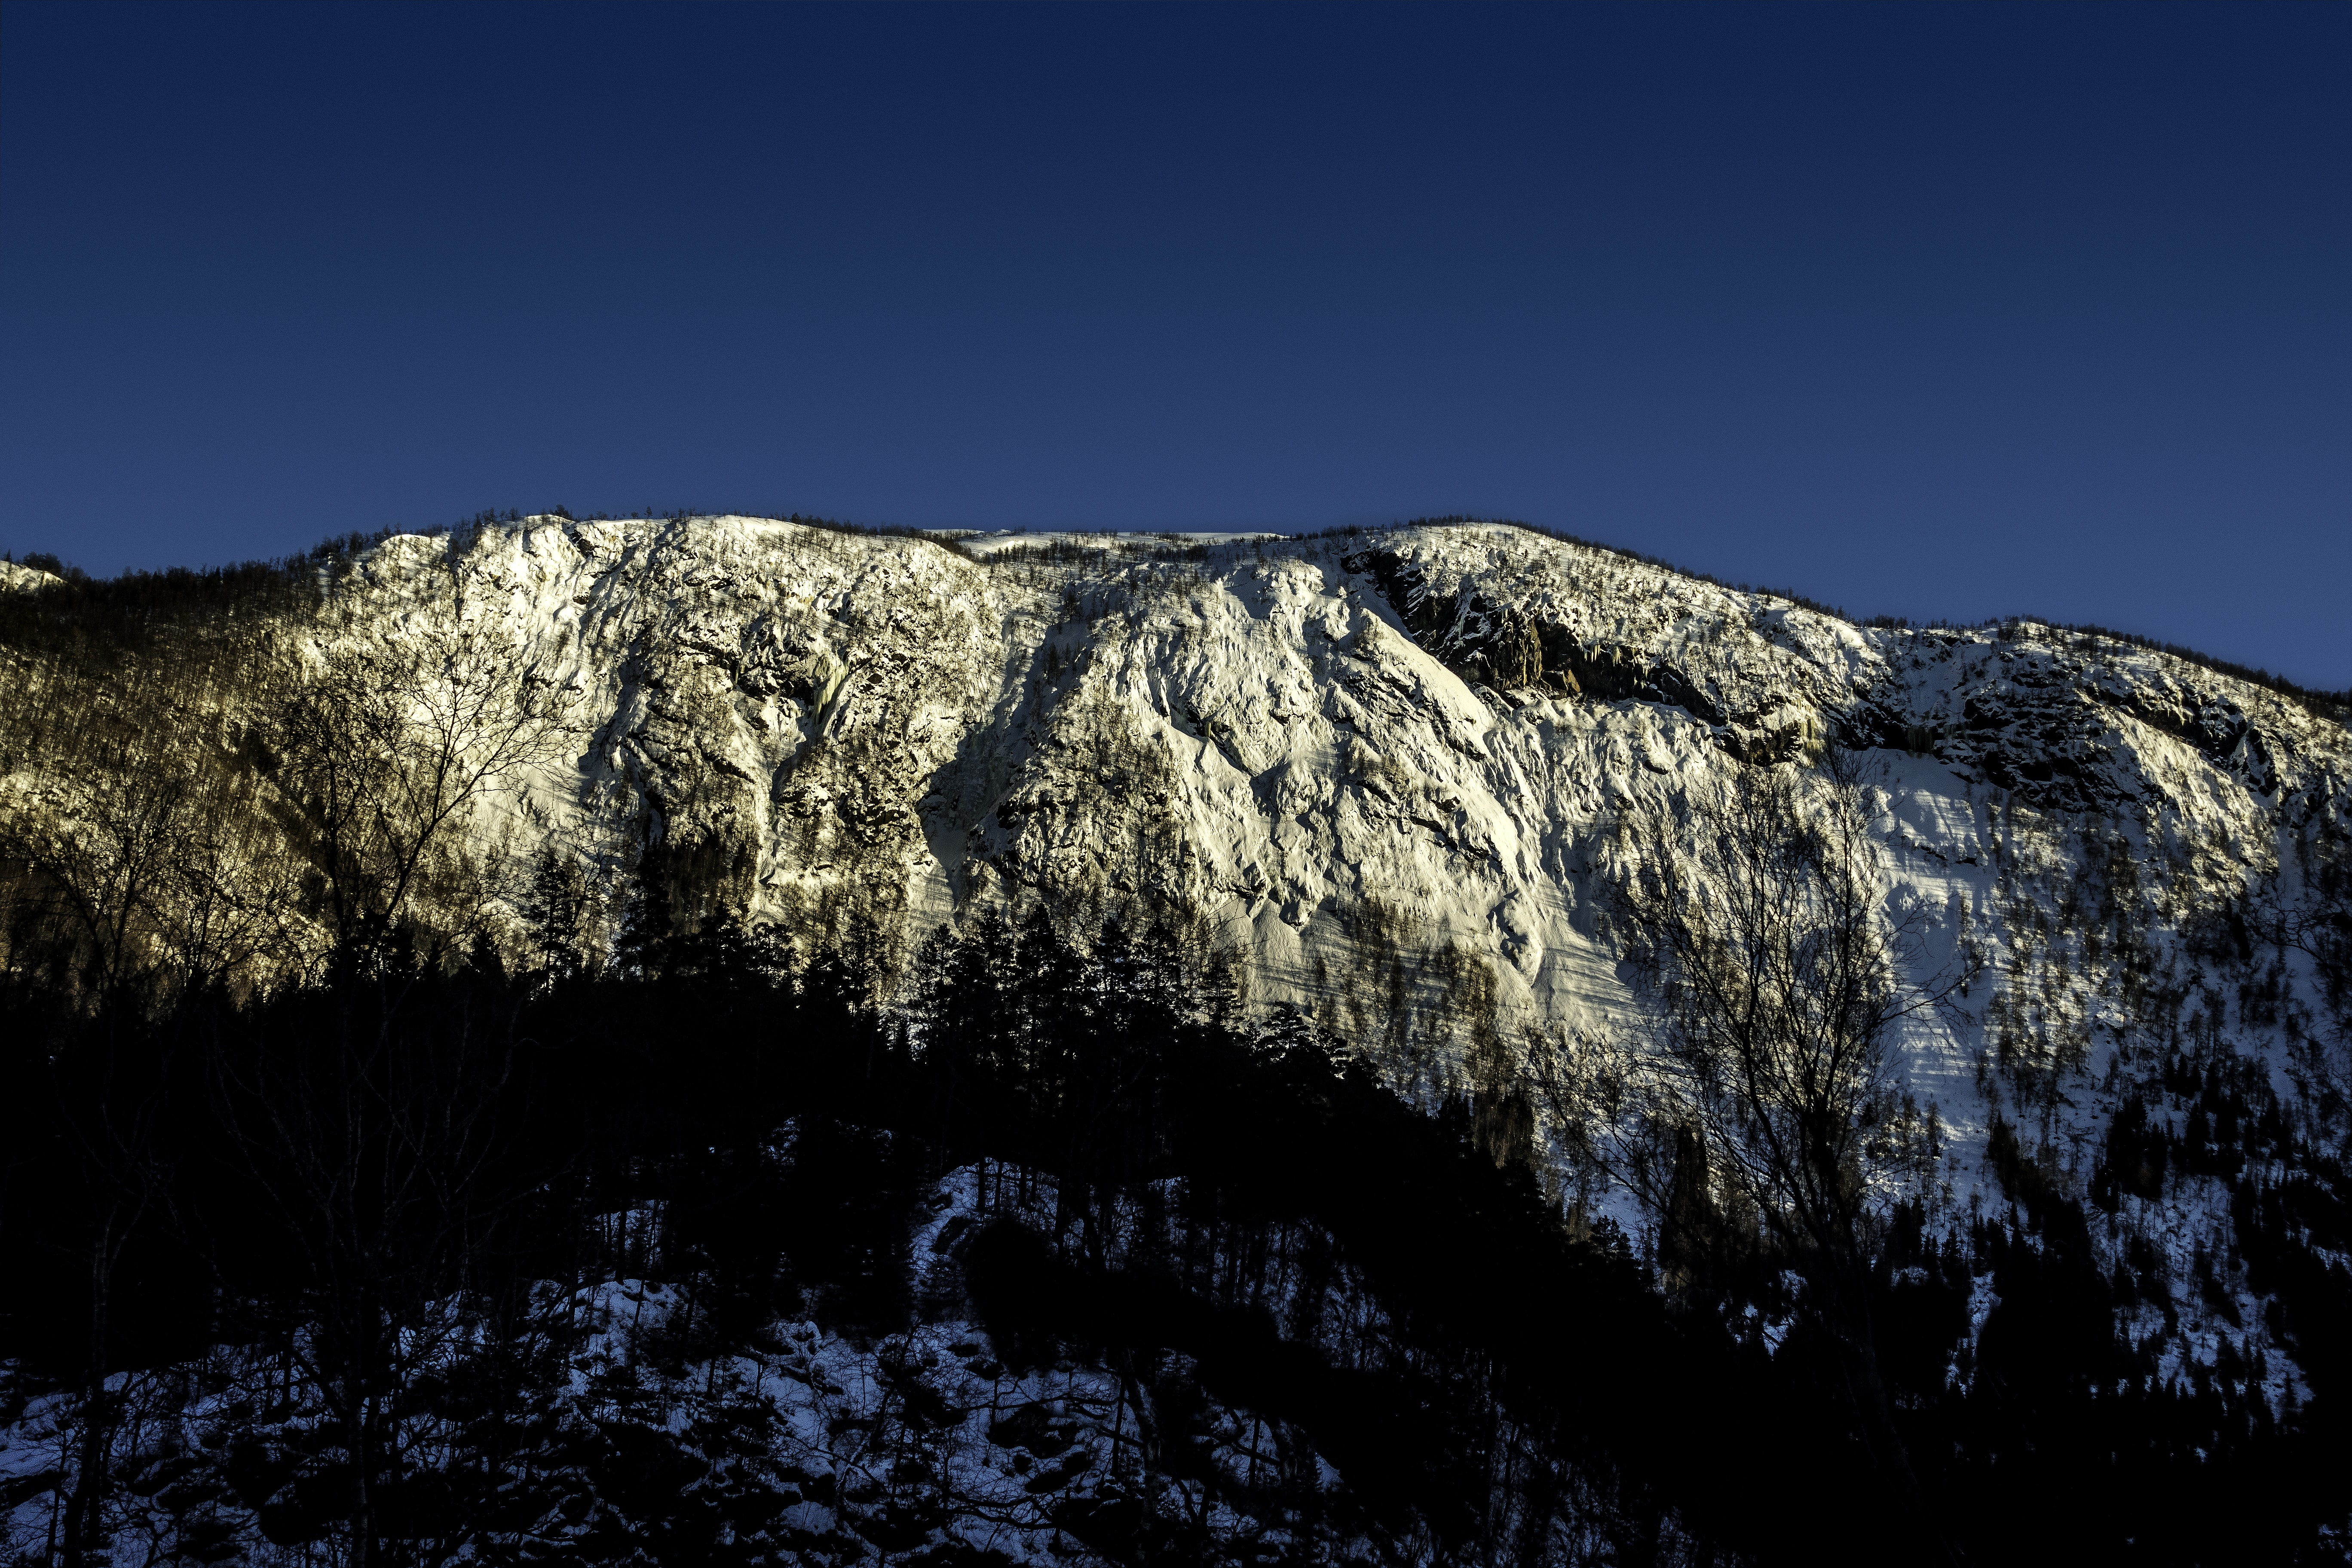 brown and white mountain cliff under blue sky